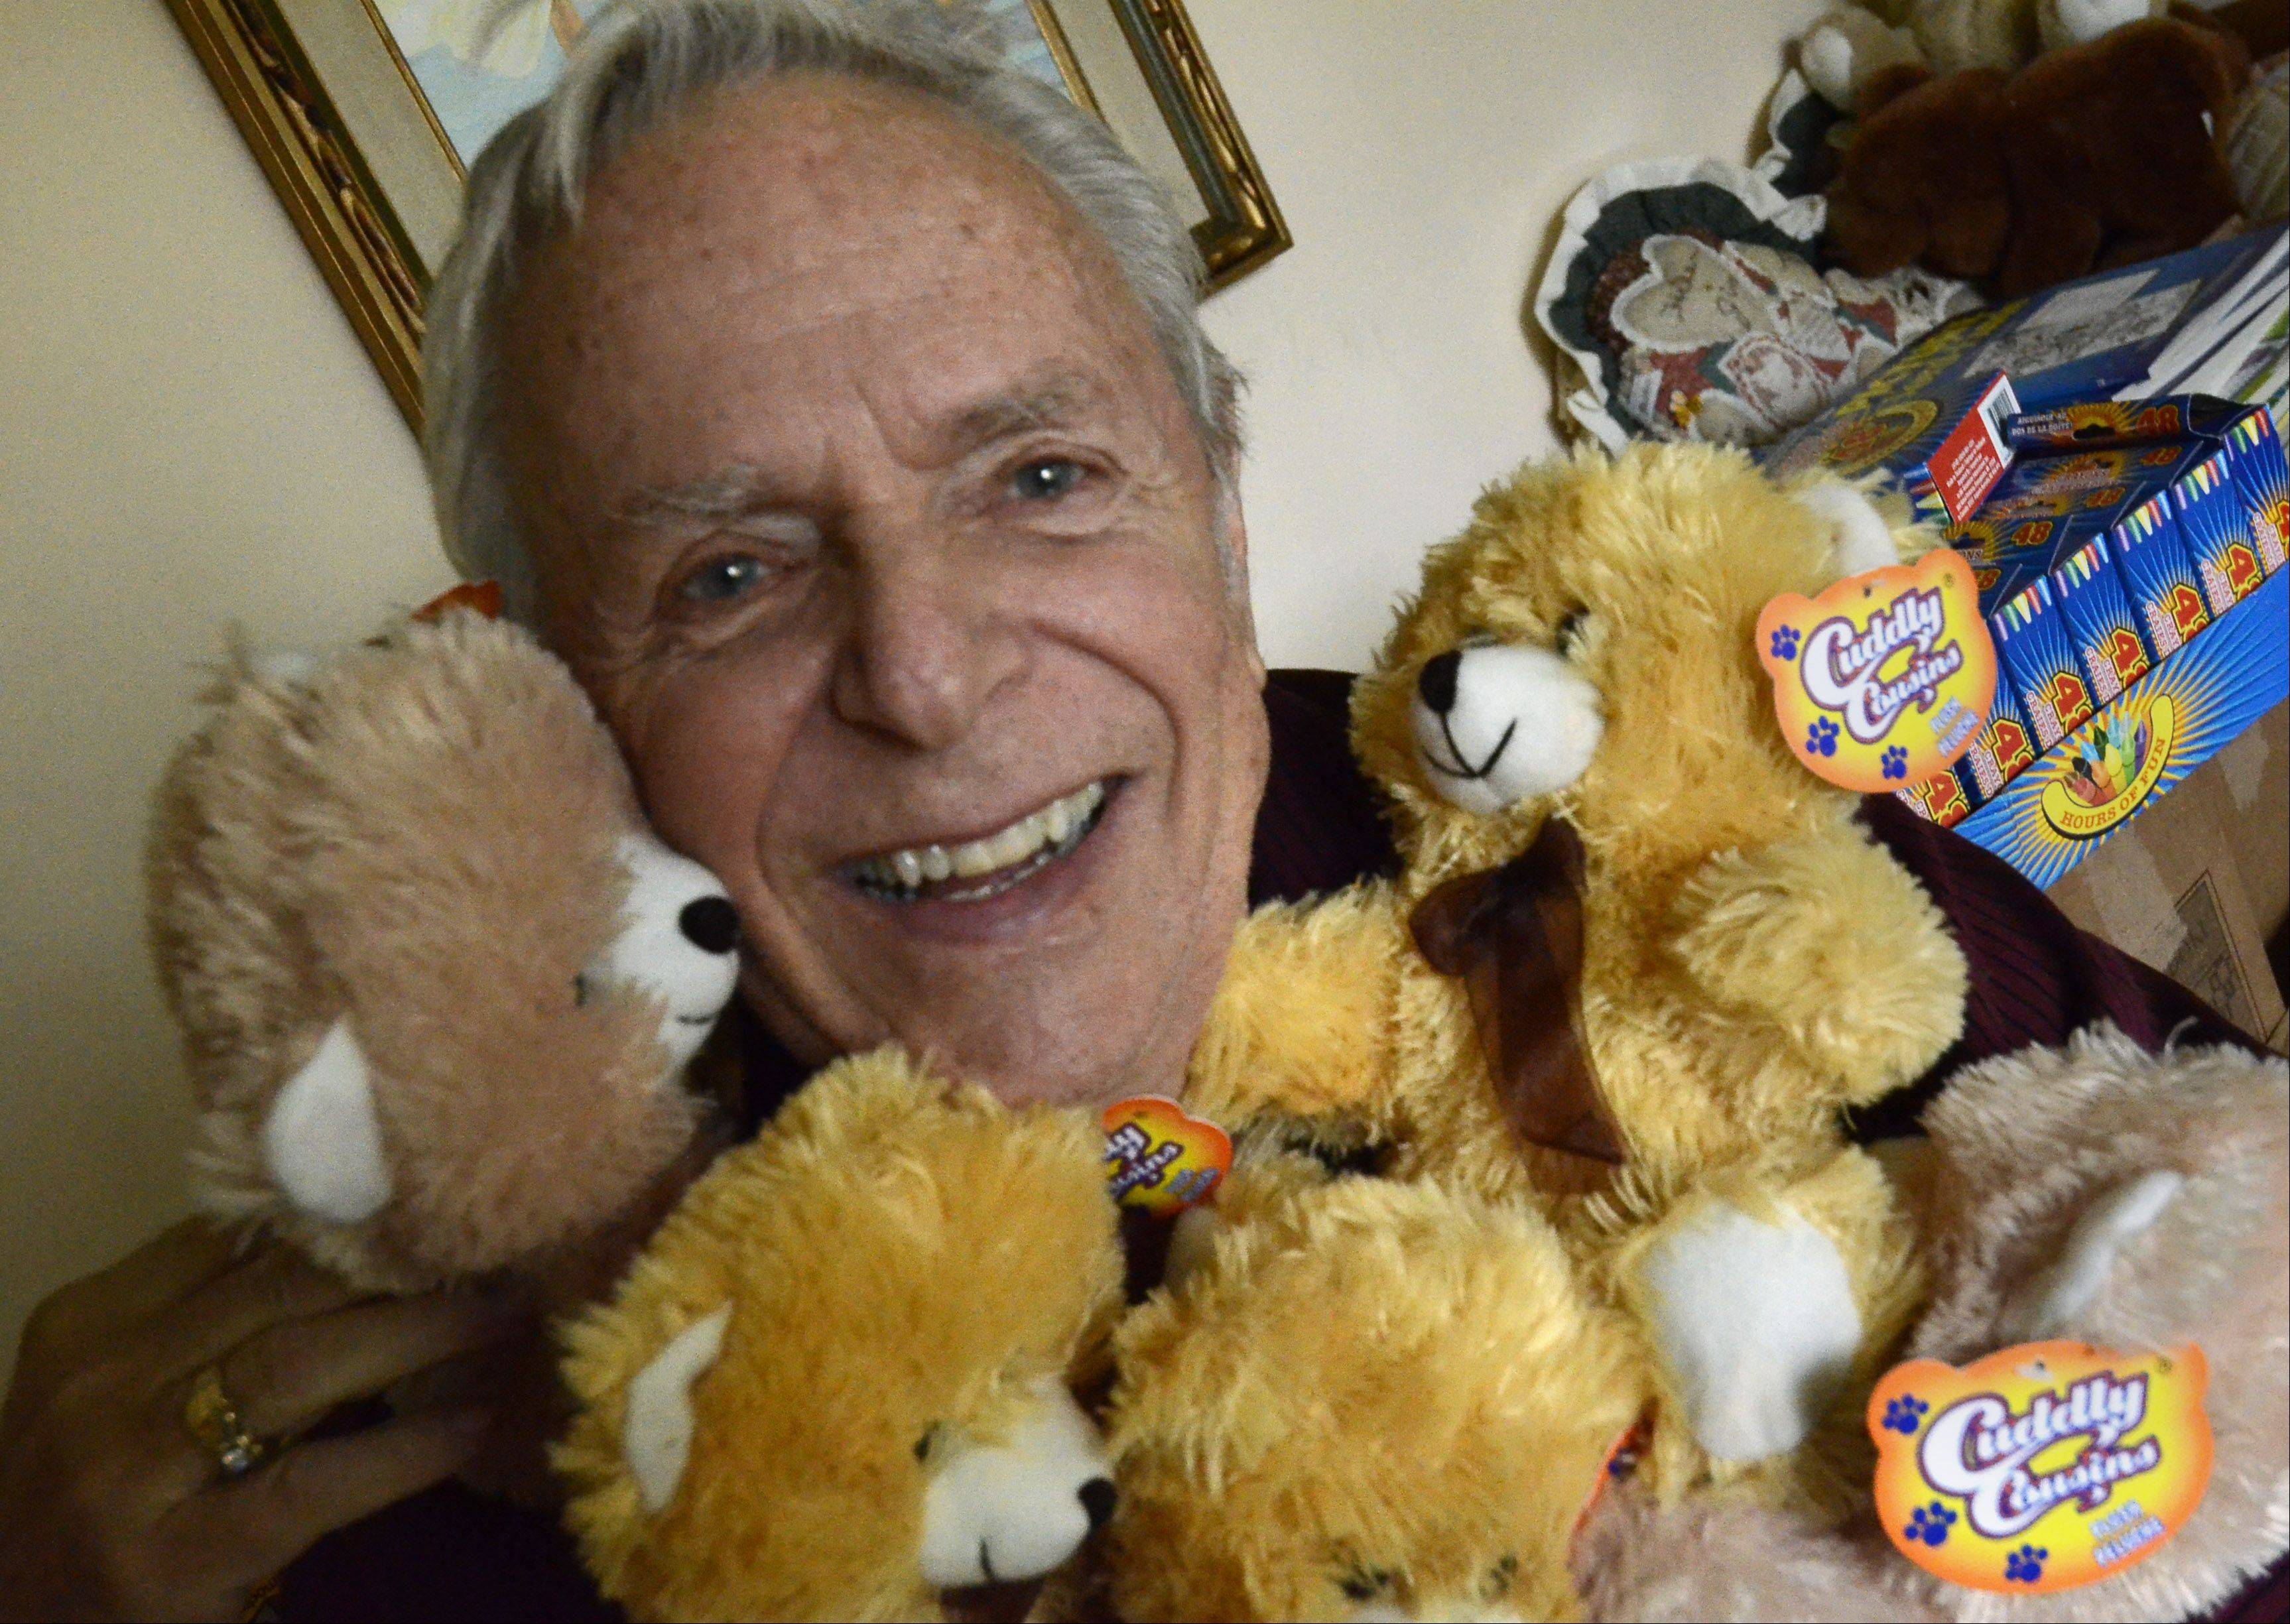 Jim Harney gives a hug to some of the teddy bears that will given to children this year.